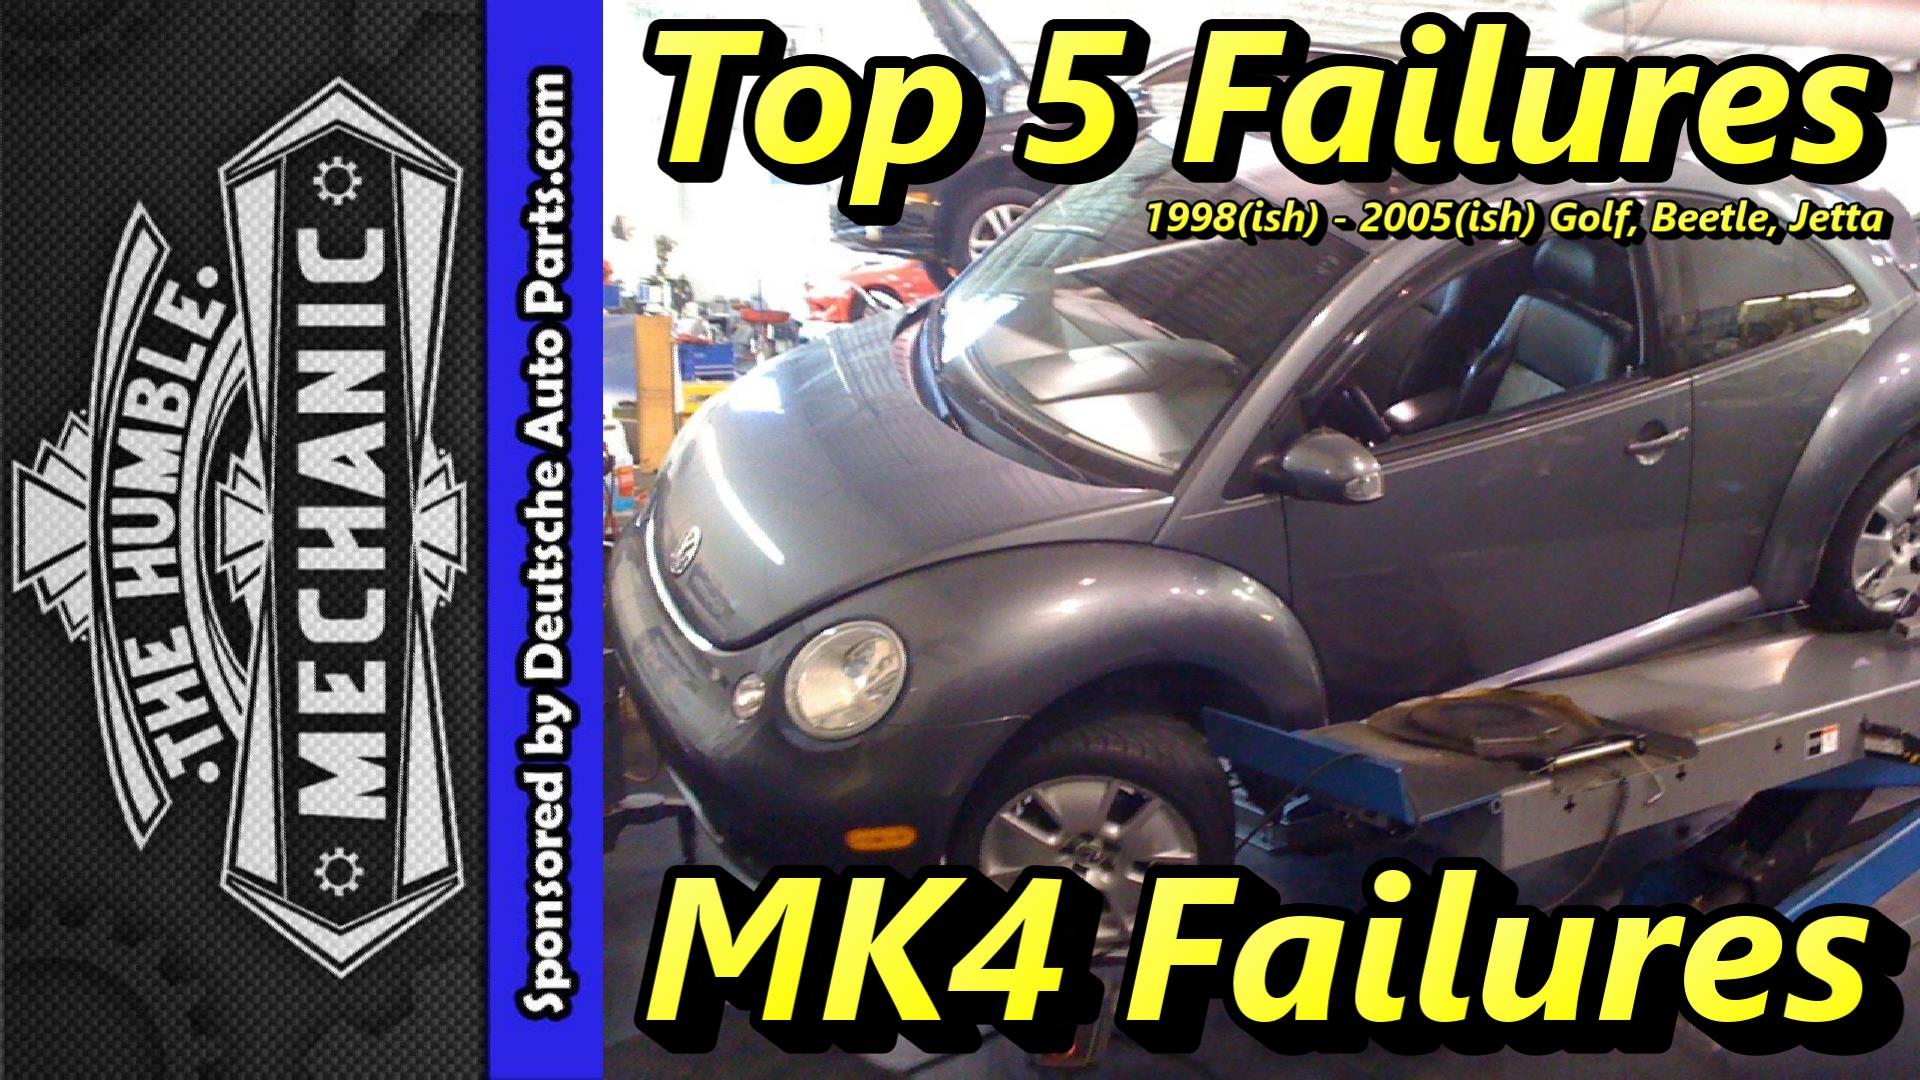 99 volkswagen beetle fuse box top 5 failures 1999 2005 mk4 golf  beetle and jetta     humble mechanic  top 5 failures 1999 2005 mk4 golf